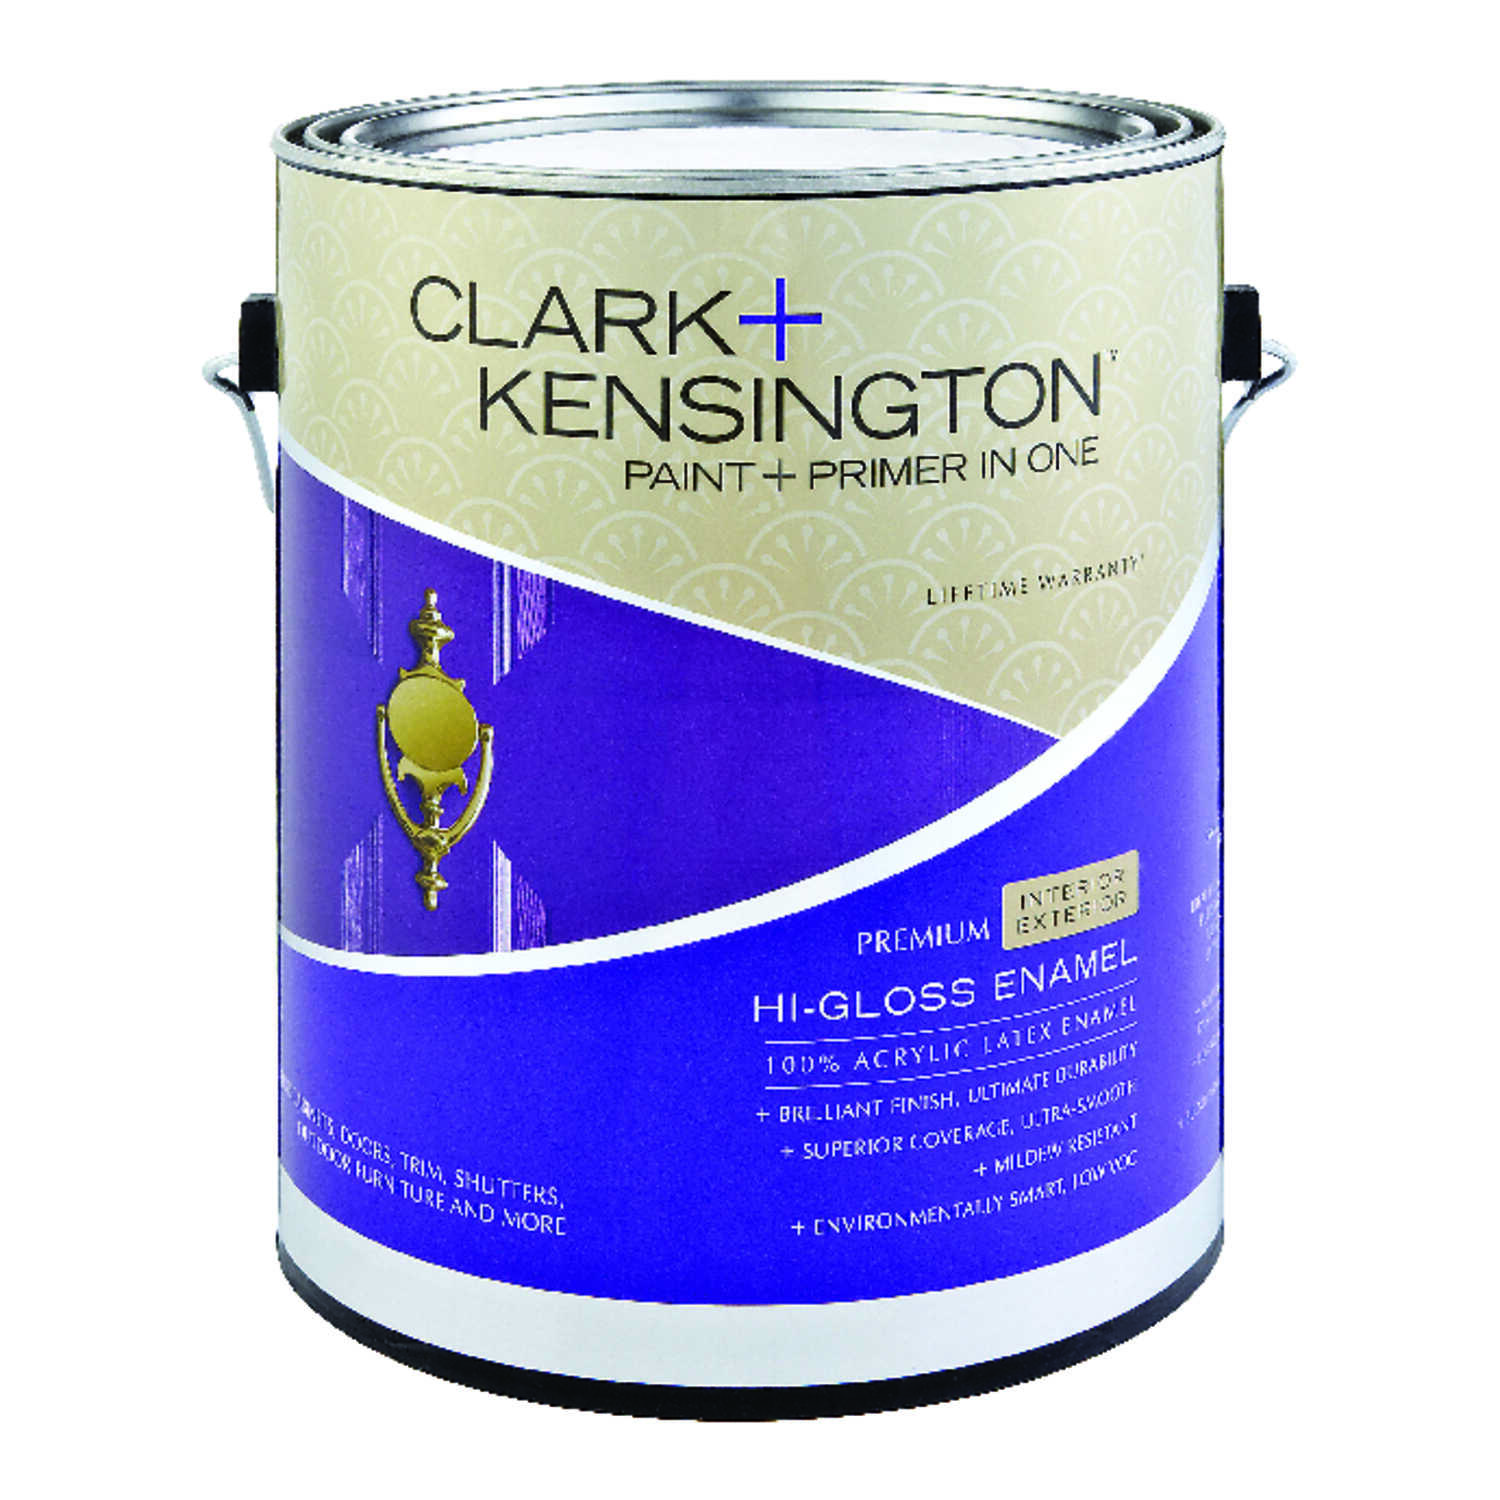 Clark+Kensington  High-Gloss  Designer White  1 gal. Paint and Primer